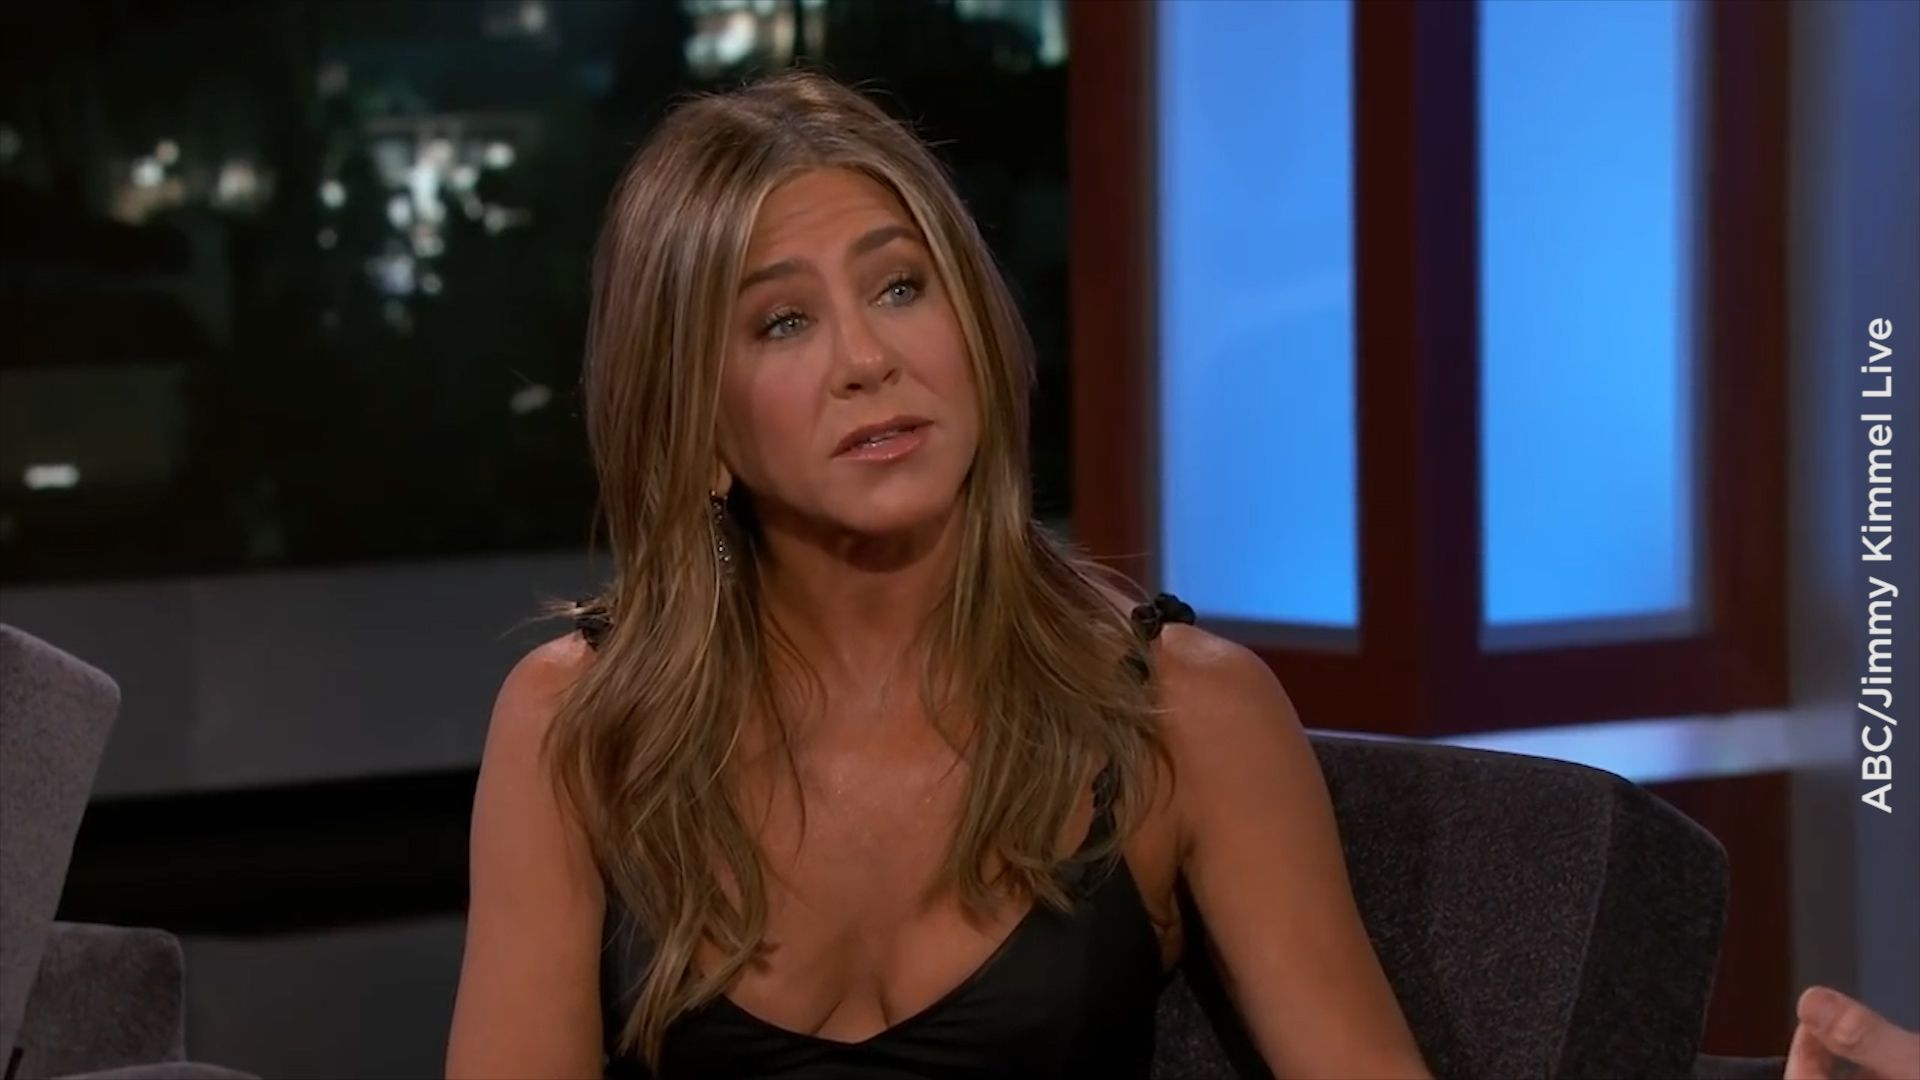 Jennifer Aniston Had A Secret Instagram Account Before Launching Official Profile